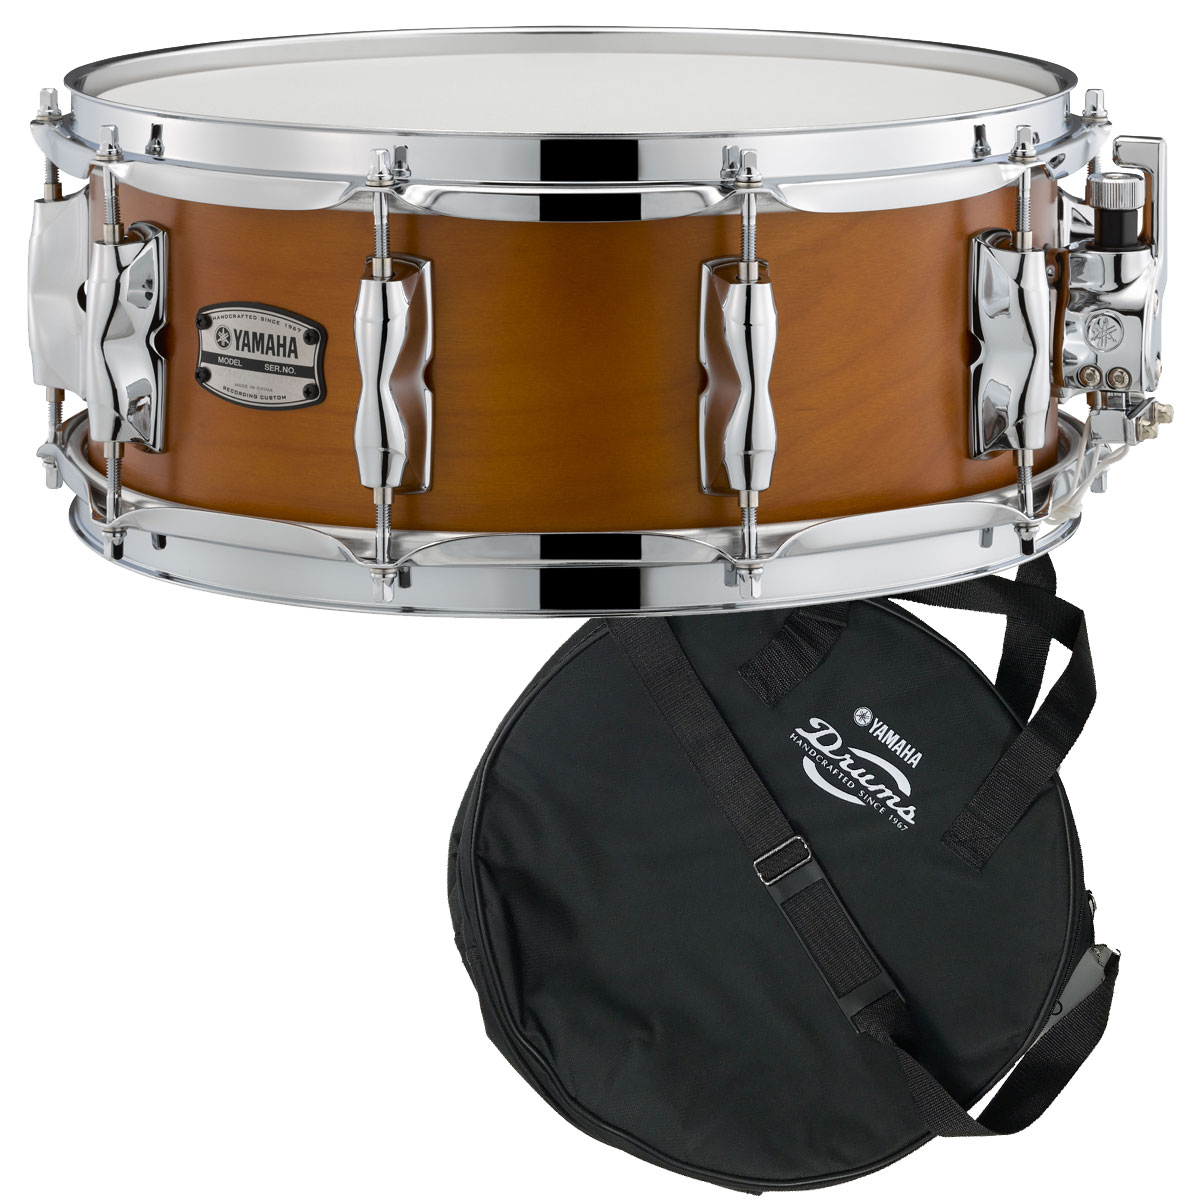 YAMAHA / RBS1455RW ヤマハ Recording Custom Wood Snare Drum 14x5.5 スネアバッグ付き【YRK】